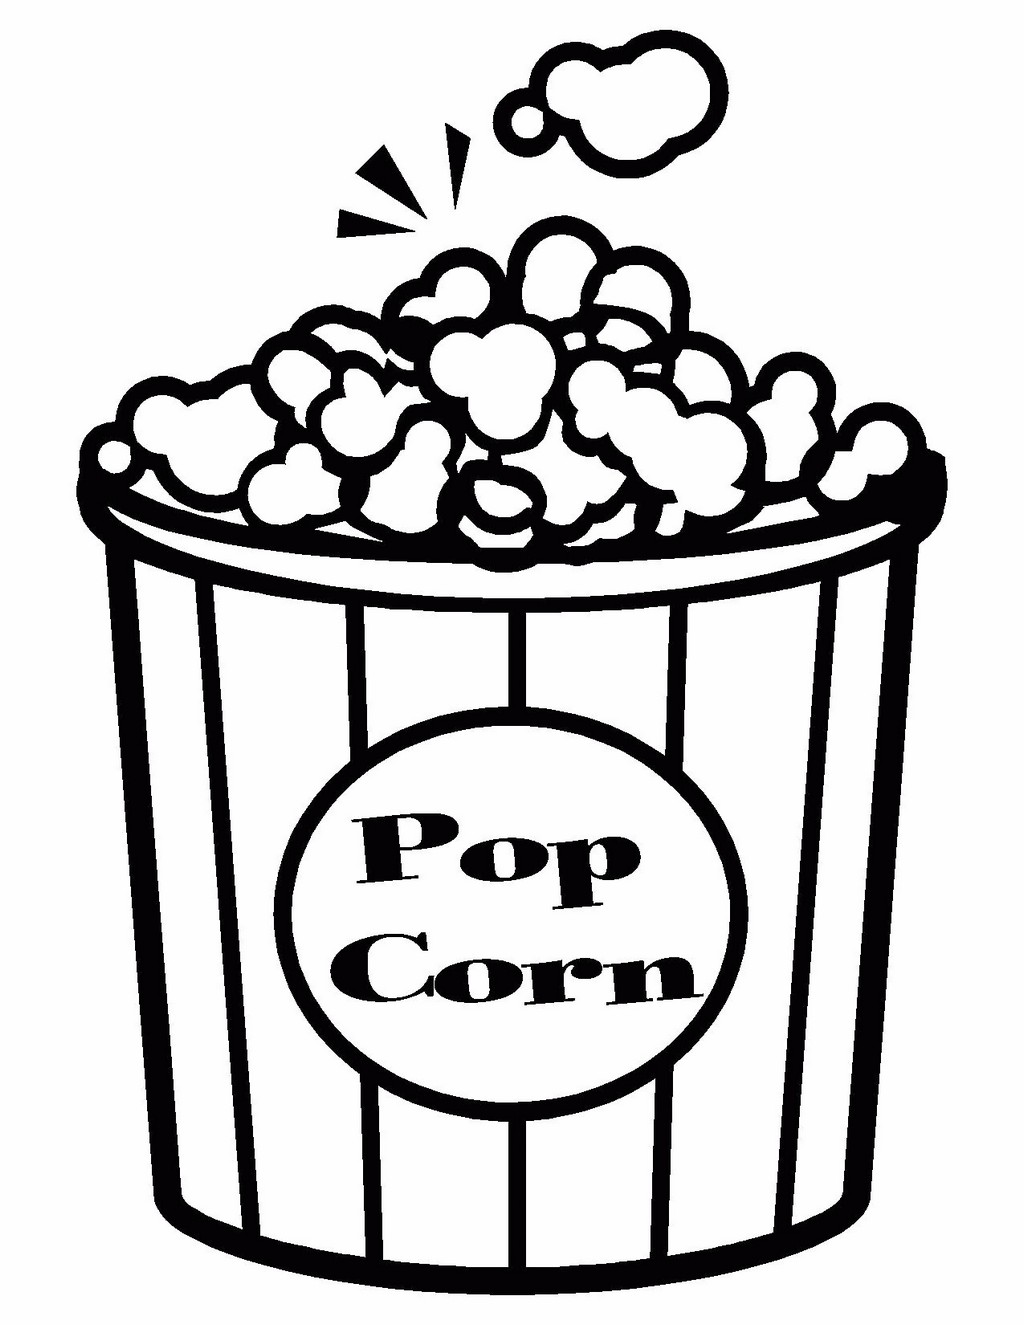 pop corn coloring book for kids